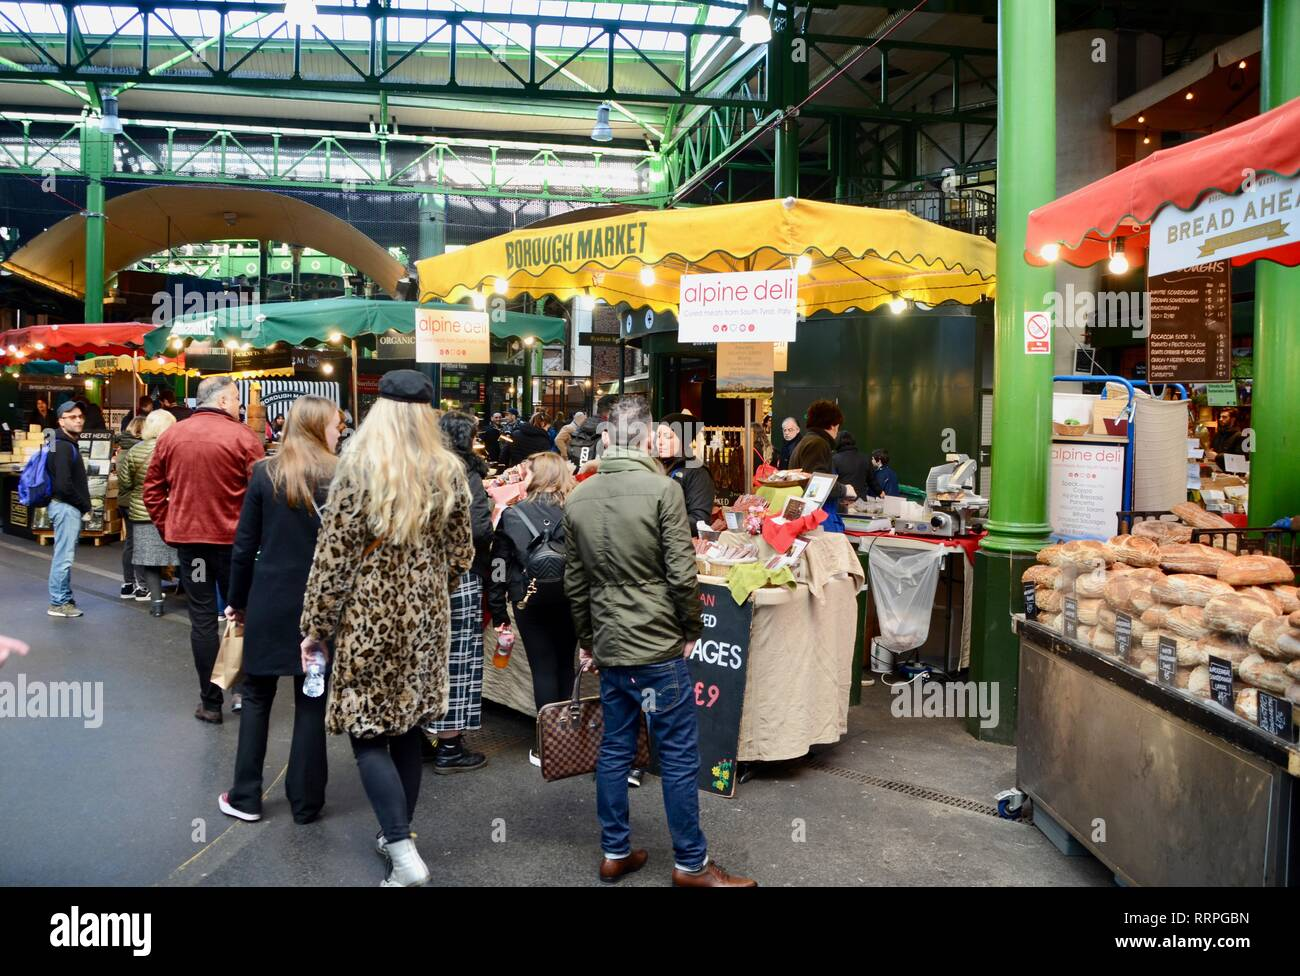 inside borough market in london with colourful stalls and shoppers - Stock Image